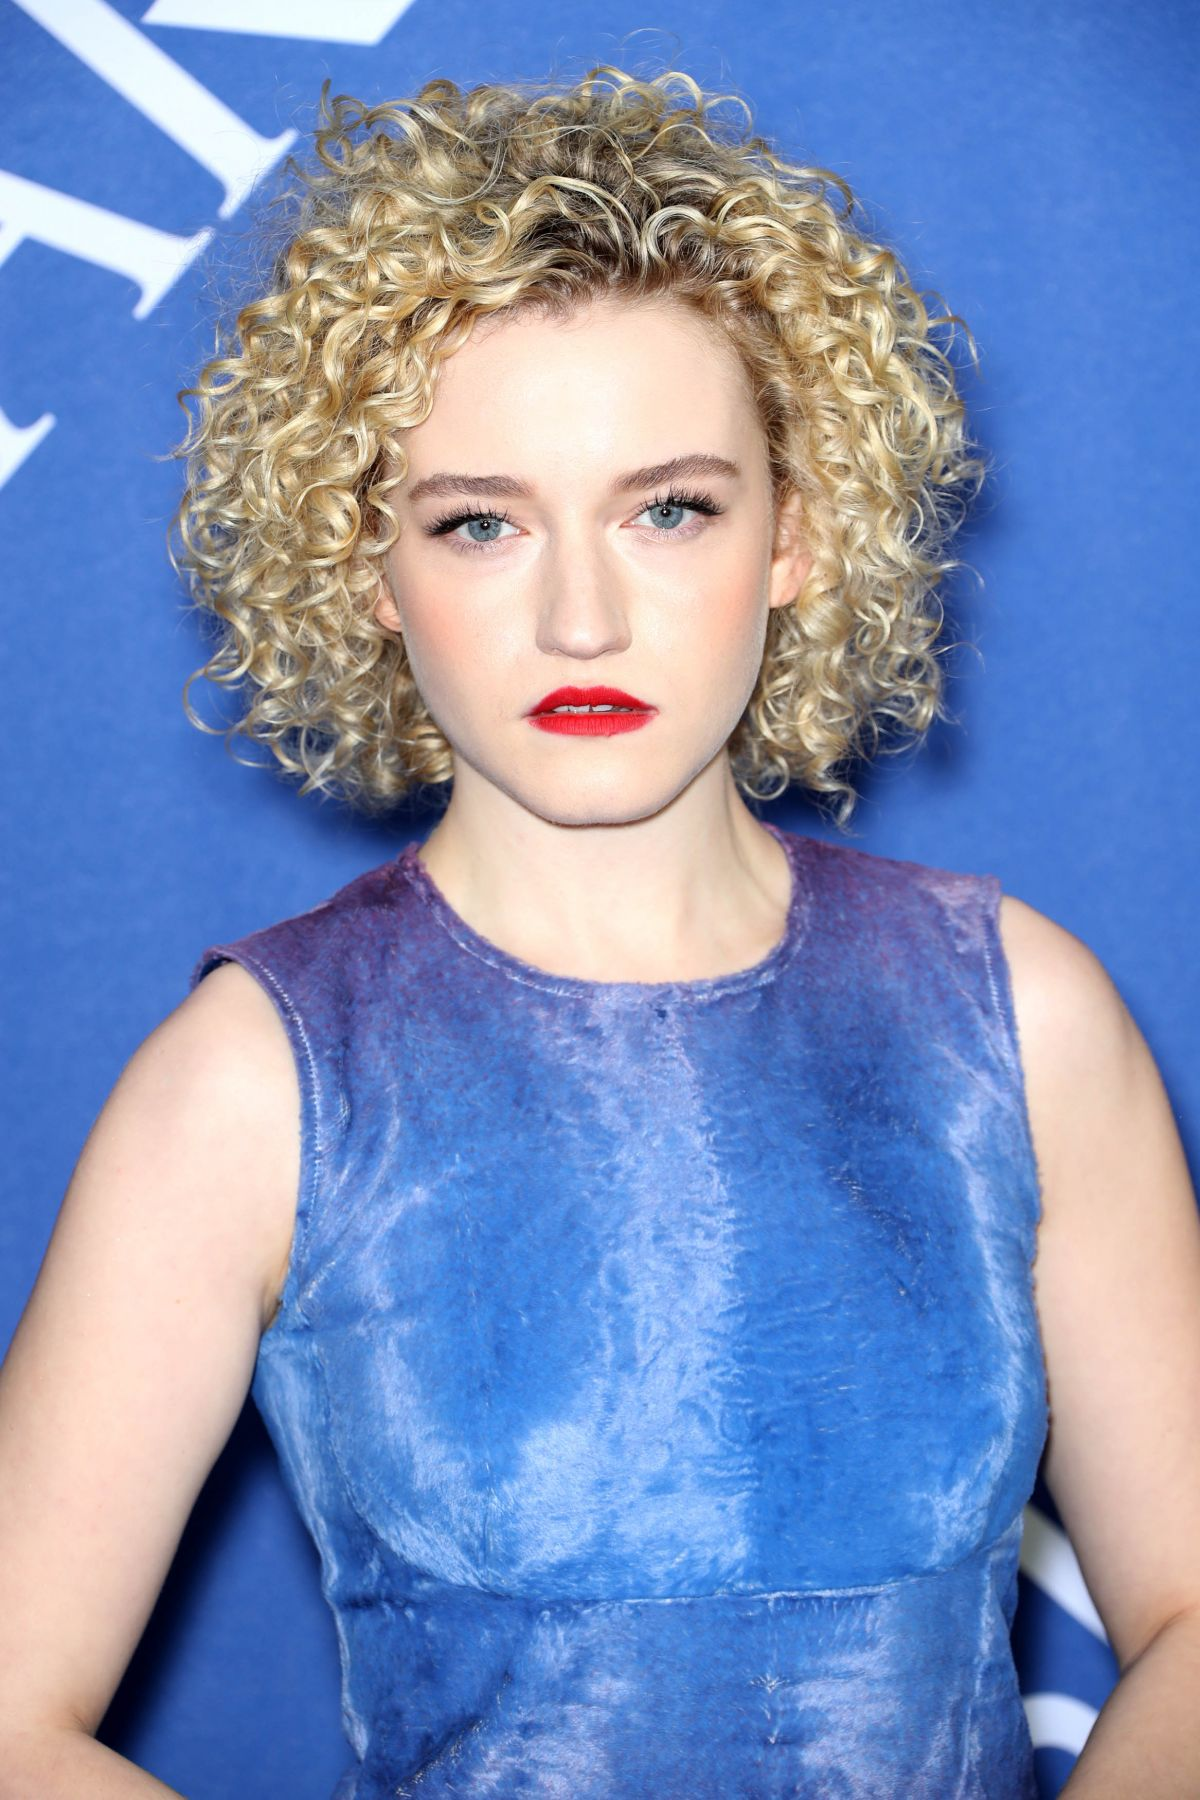 Julia Garner See Through 13 Photos: JULIA GARNER At CFDA Fashion Awards In New York 06/05/2018